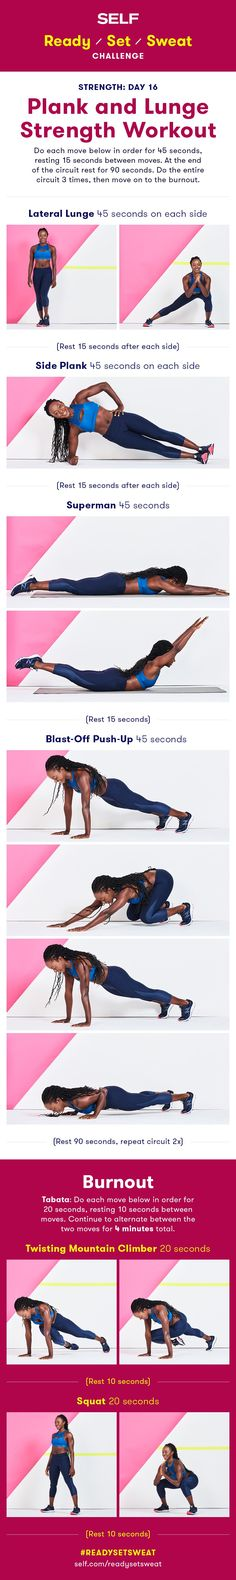 Plank and Lunge Strength Workout